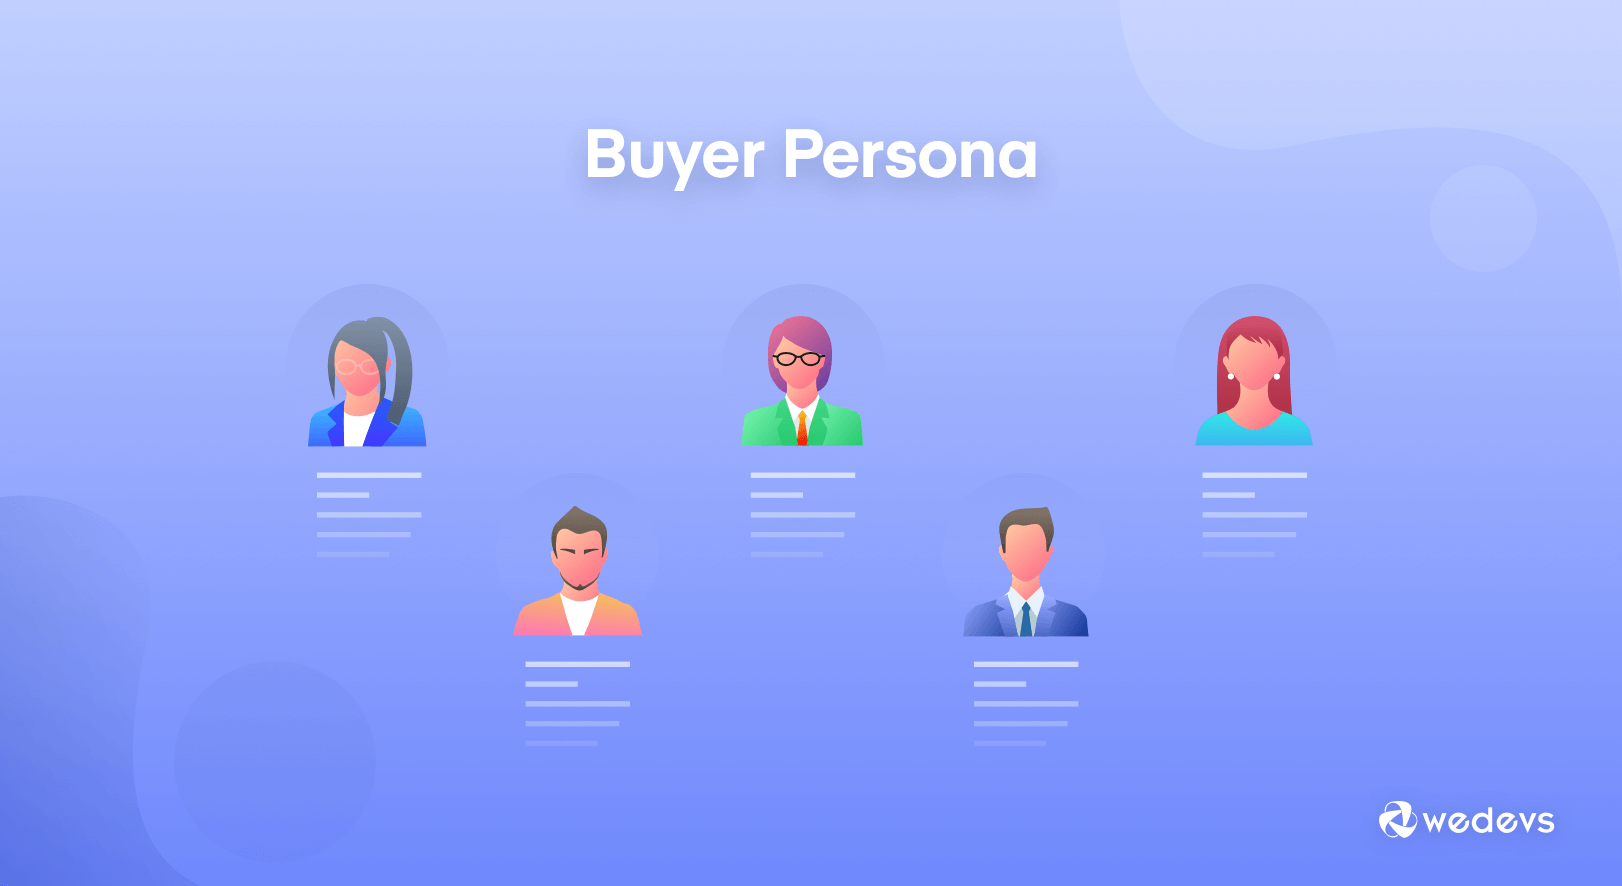 How to Create a Buyer Persona & Make Your Buyers' Journey Easier